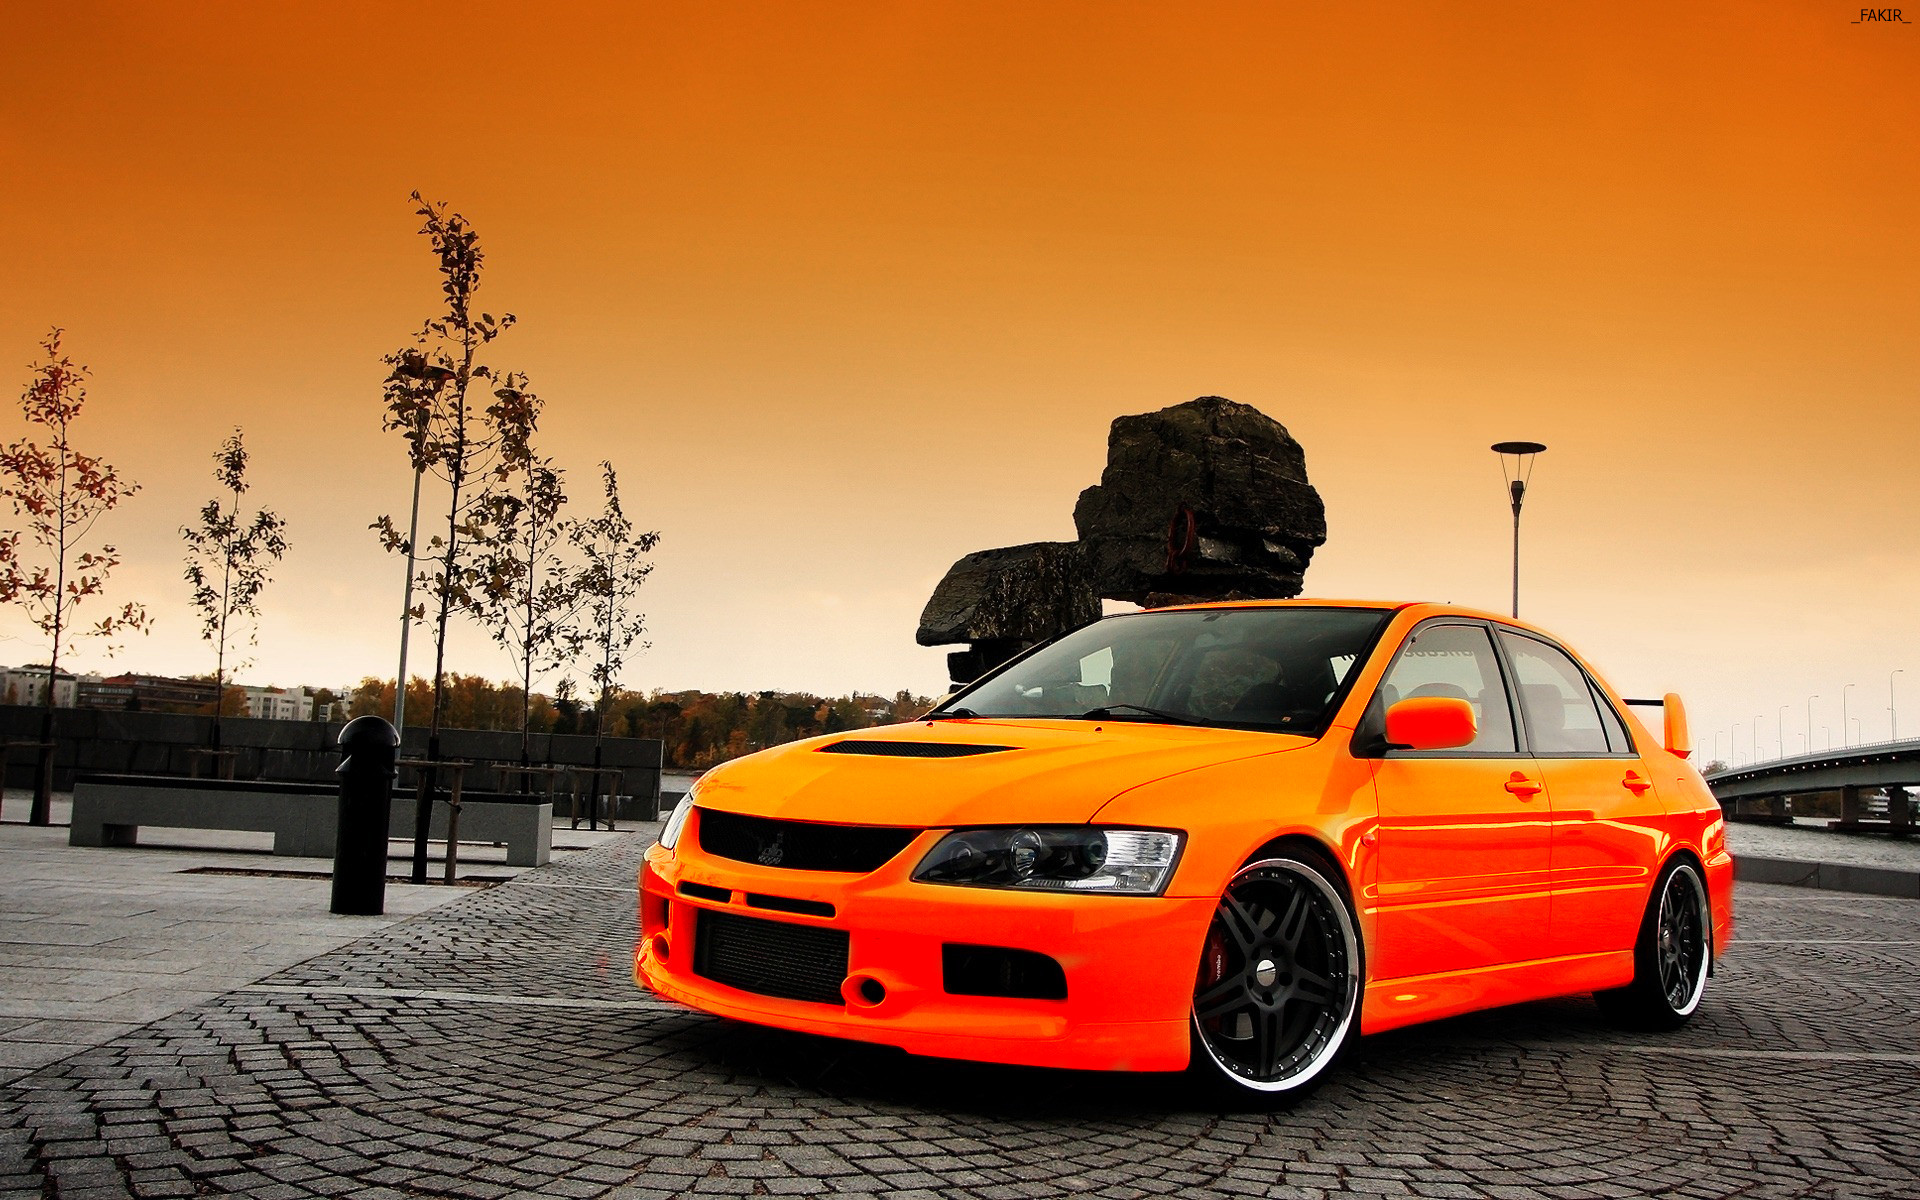 Wallpapers Mitsubishi Lancer Evolution Orange Cars Pavement auto  automobile